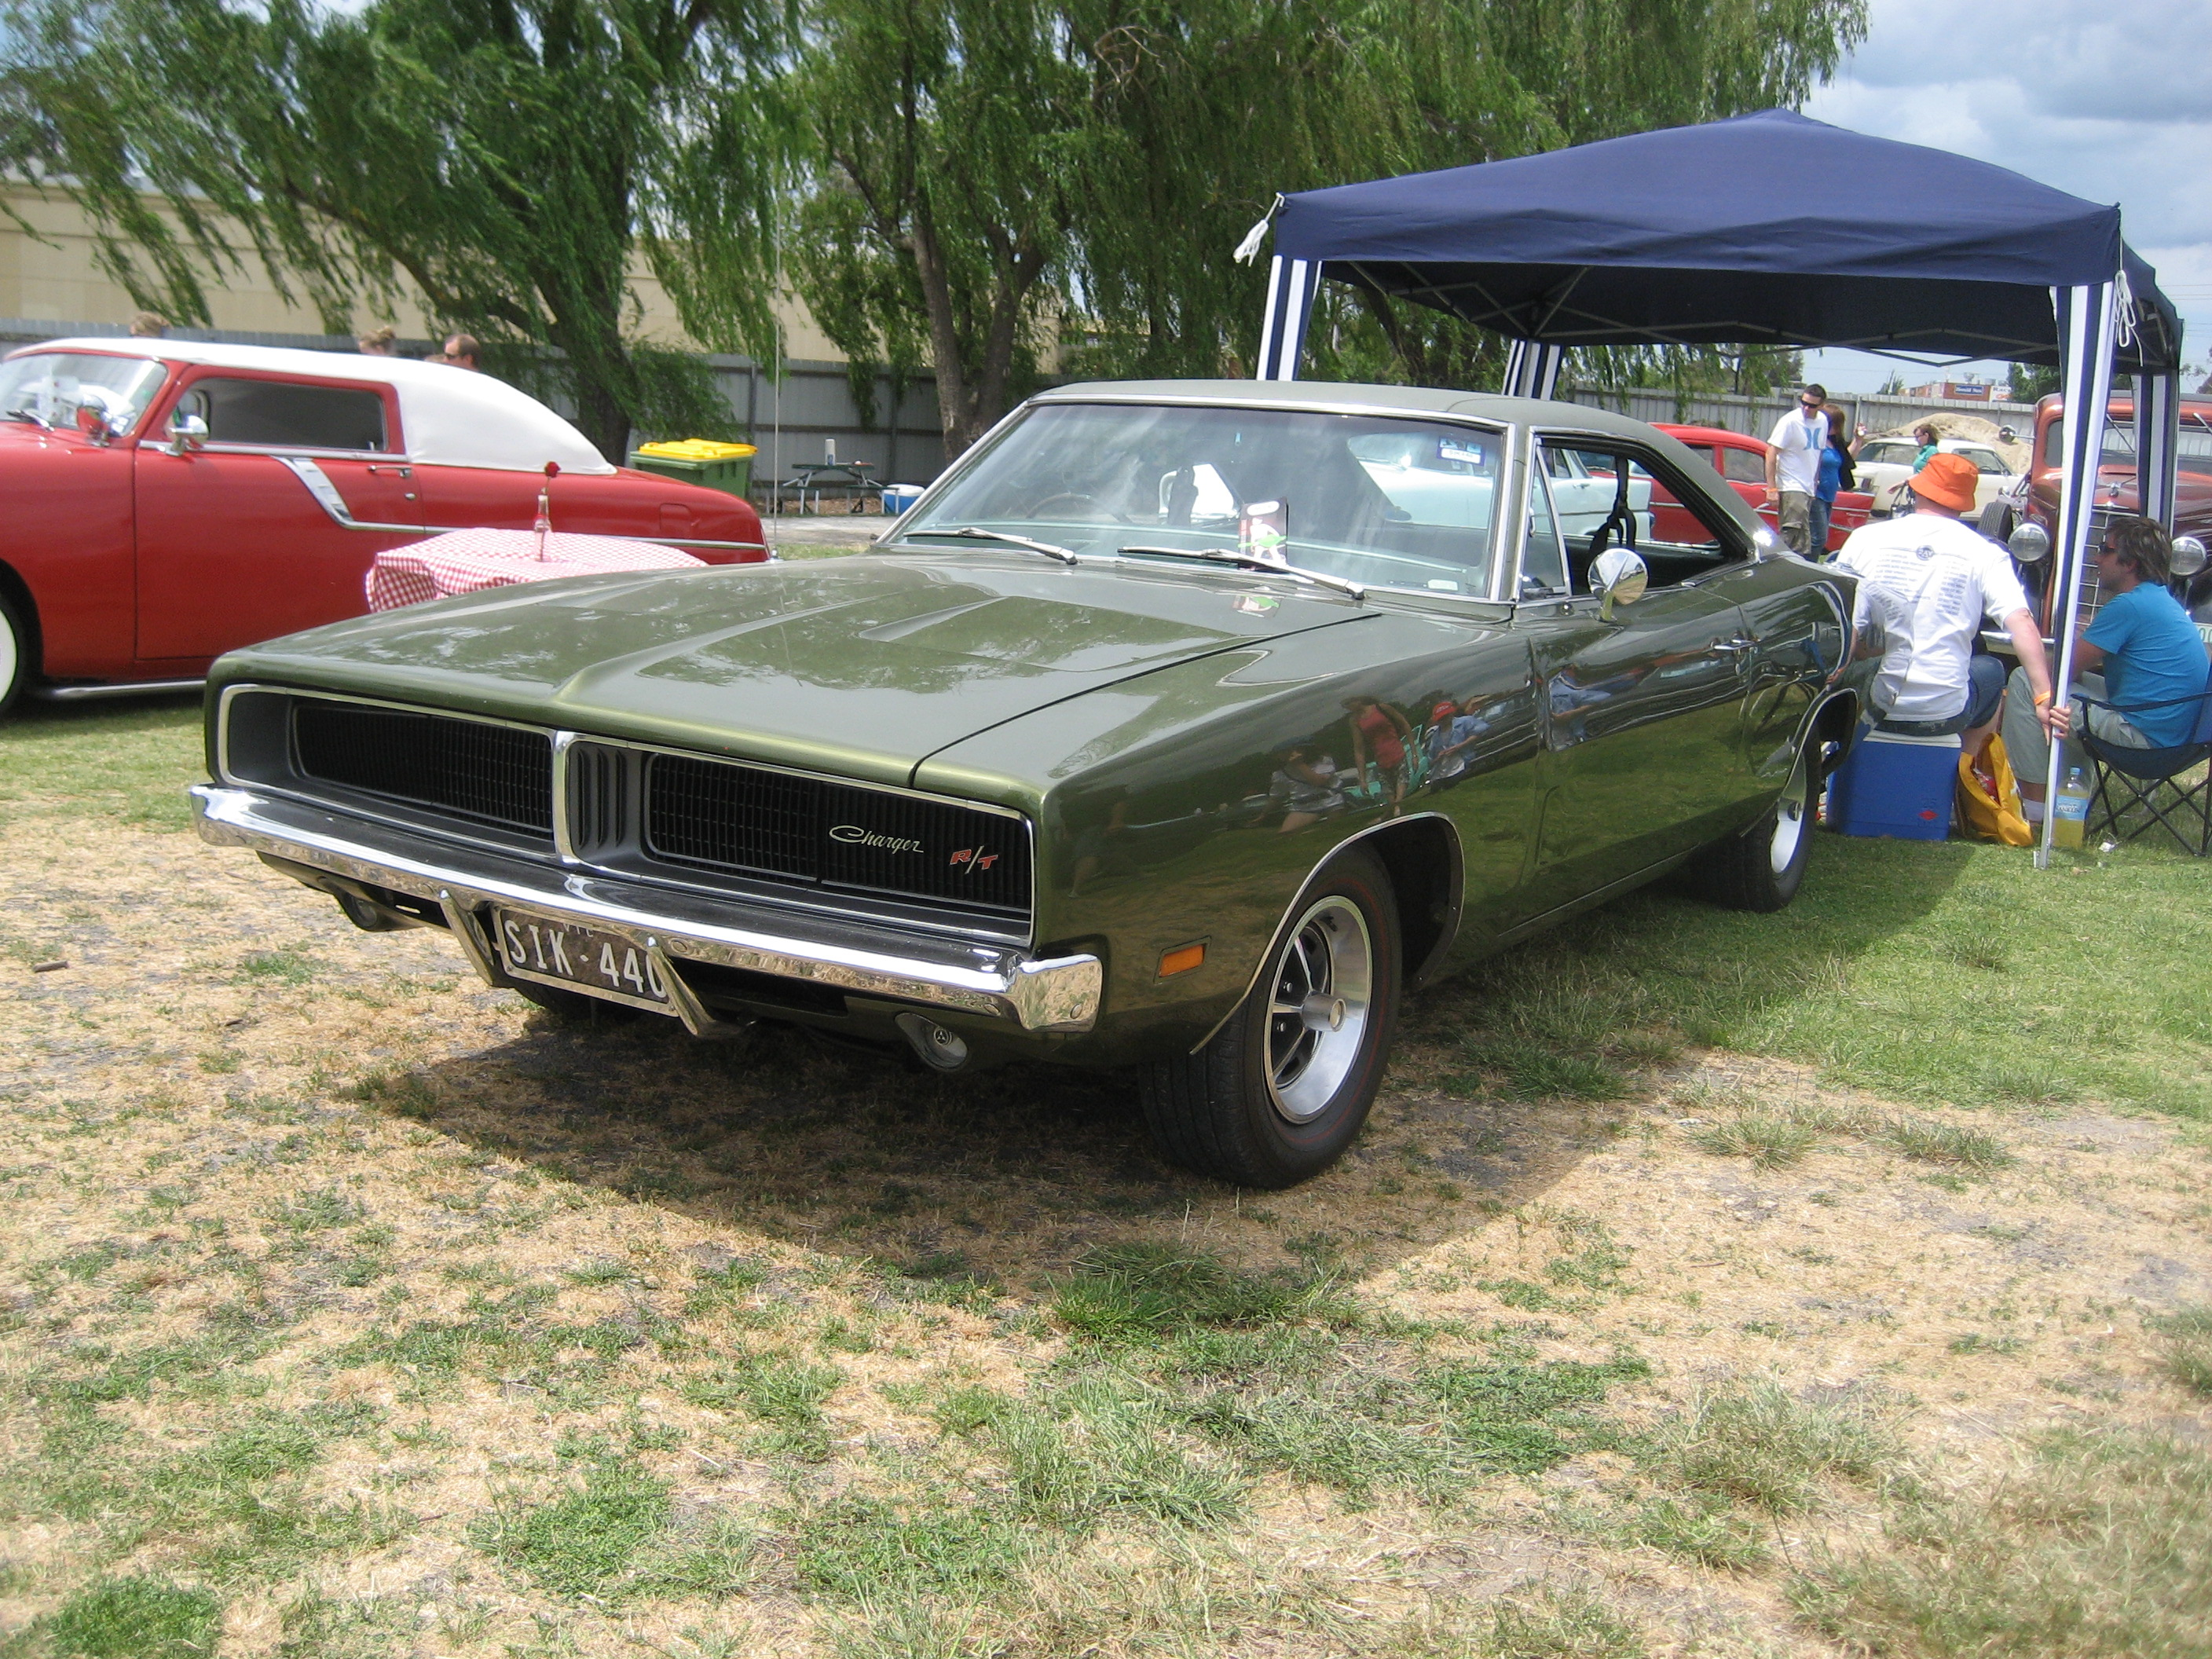 Dodge Charger Used Cars For Sale In Uae